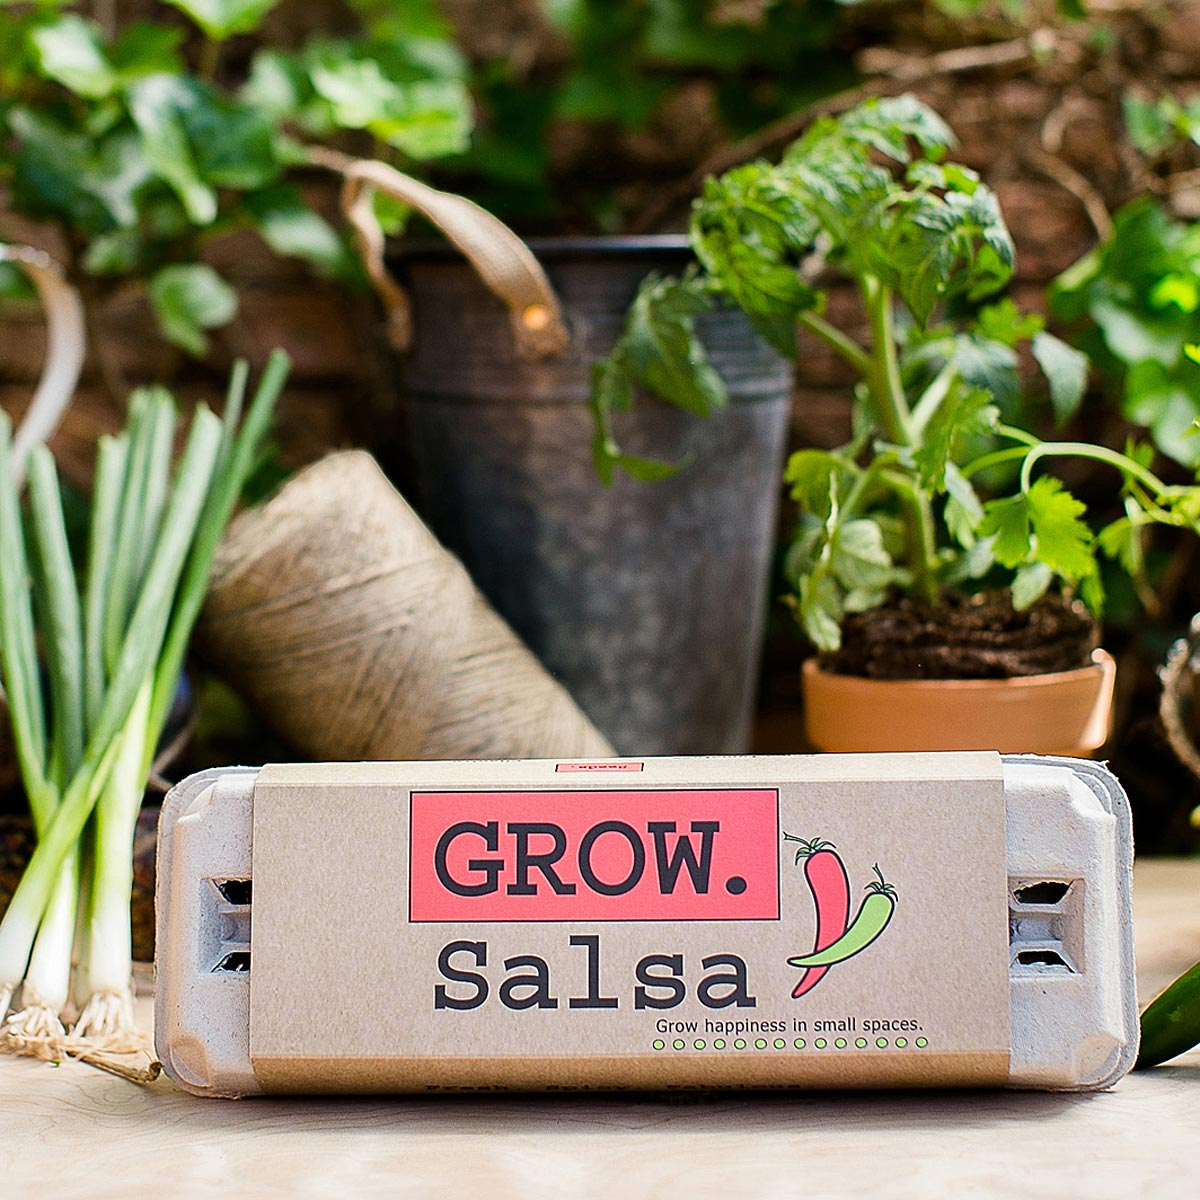 Salsa Growing Kit